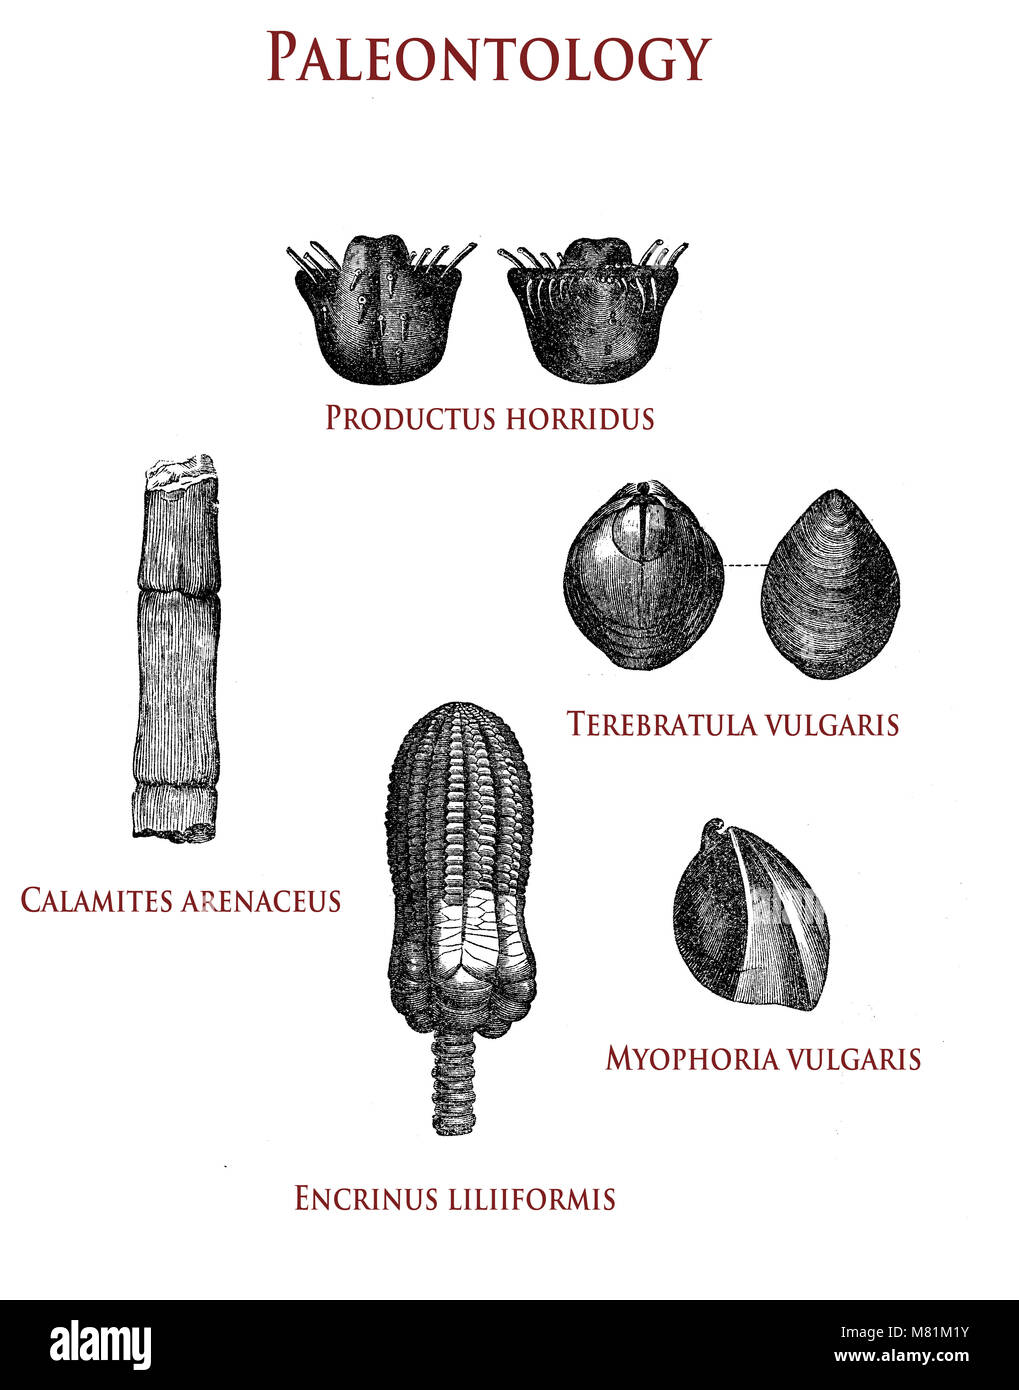 vintage illustration of paleontology fossilized plant and shells: productus horridus, calamites arenaceus, terebratula - Stock Image